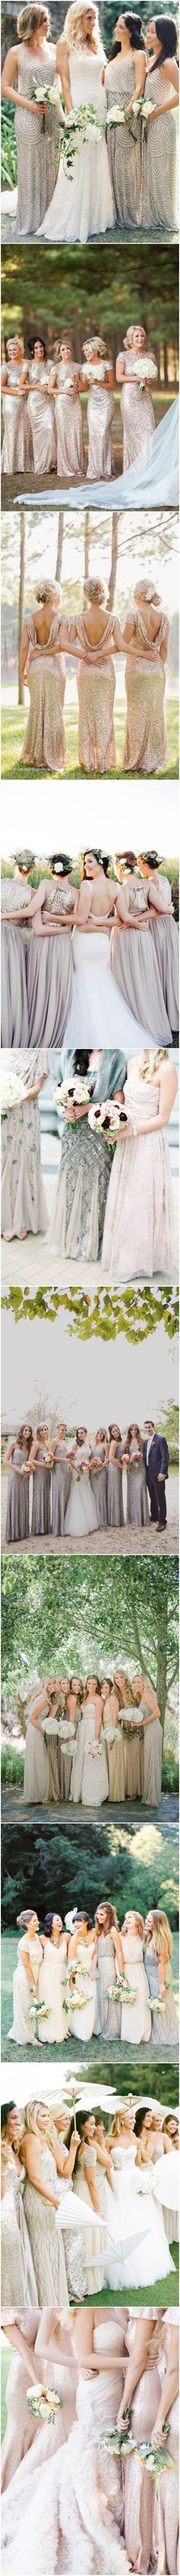 40+ Sequined and Metallic Bridesmaid Dresses - See more at: http://www.deerpearlflowers.com/2015-wedding-trends-sequined-metallic-bridesmaid-dresses/#sthash.w7SGv3DY.dpuf